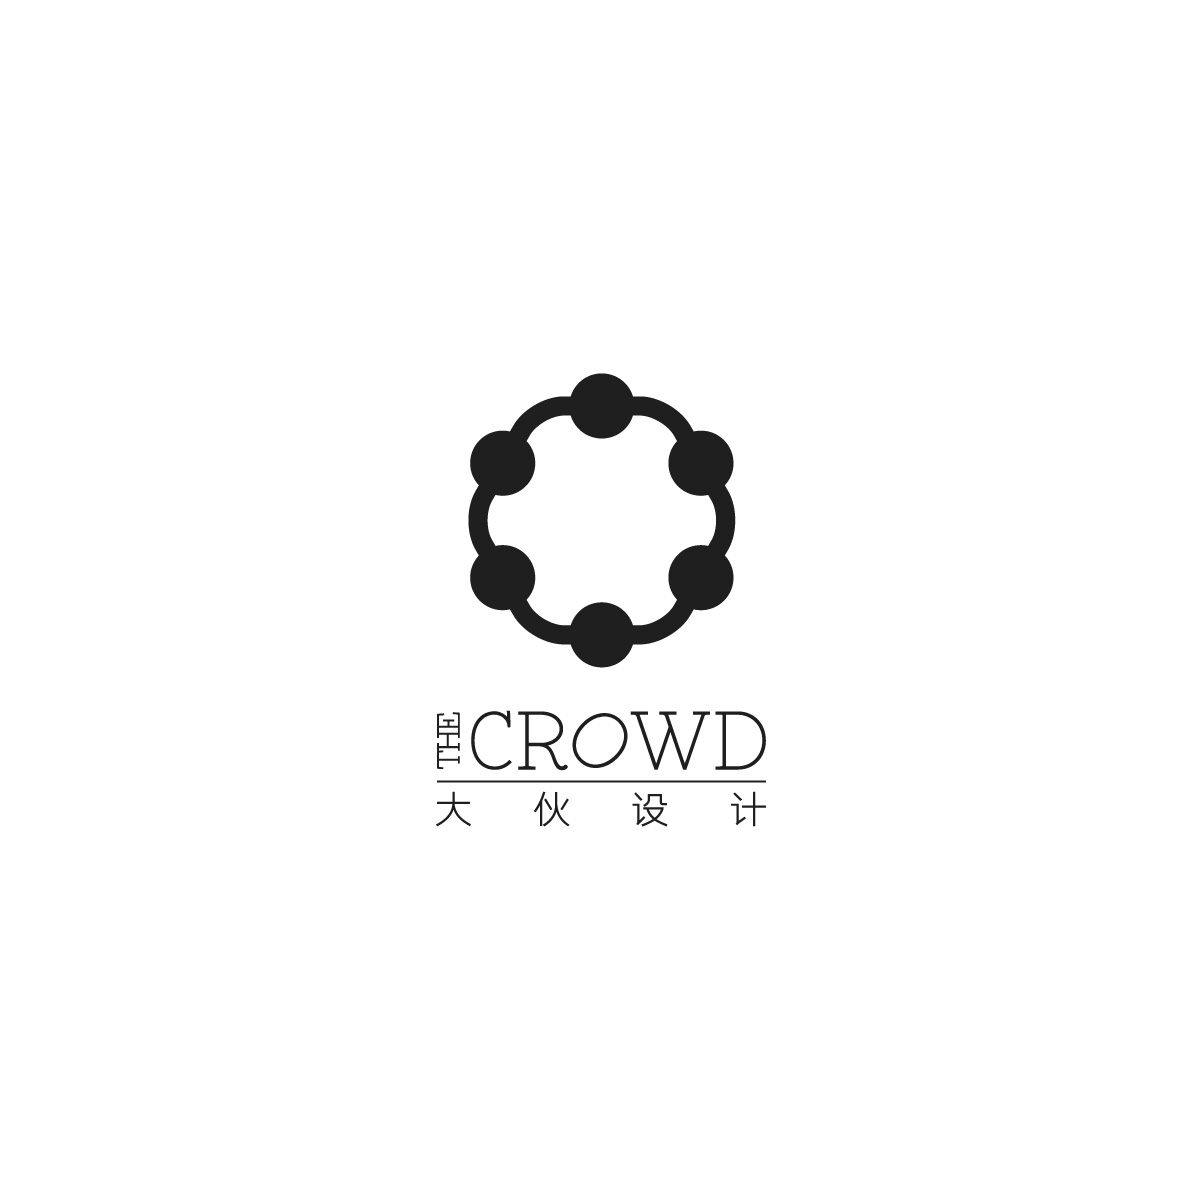 graphic_the-crowd-logo-2